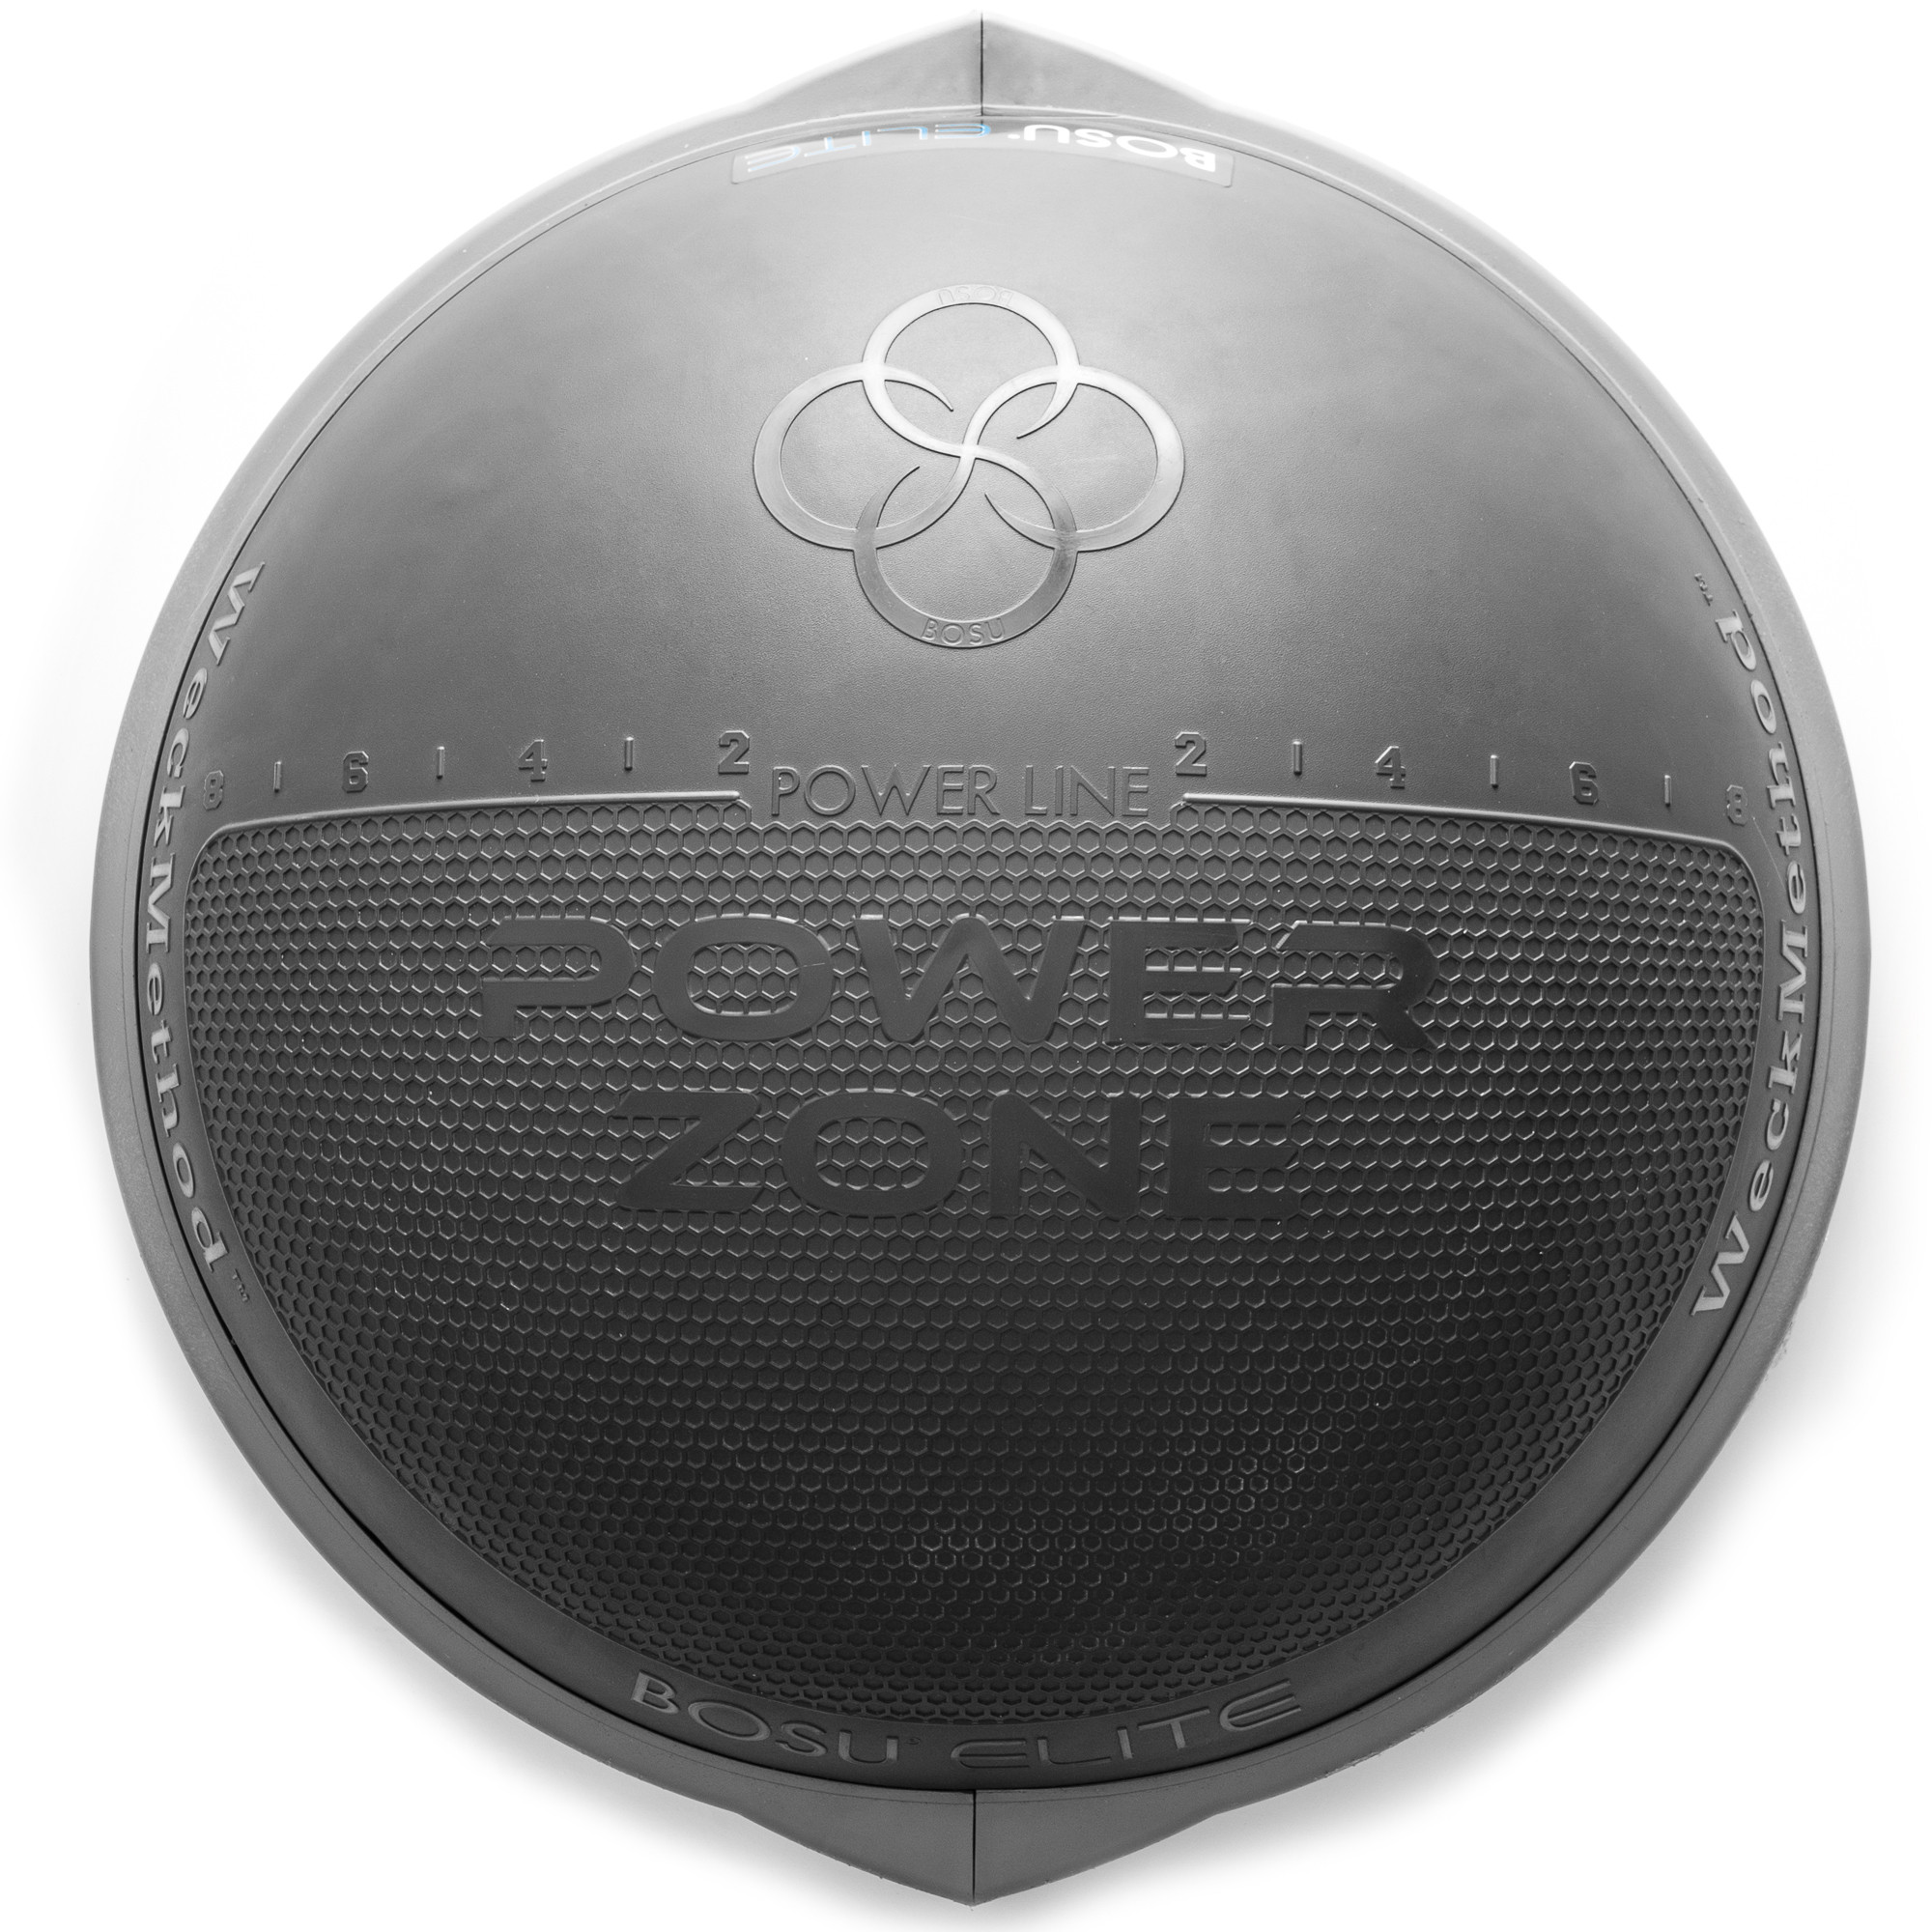 WECKMETHOD BOSU® ELITE